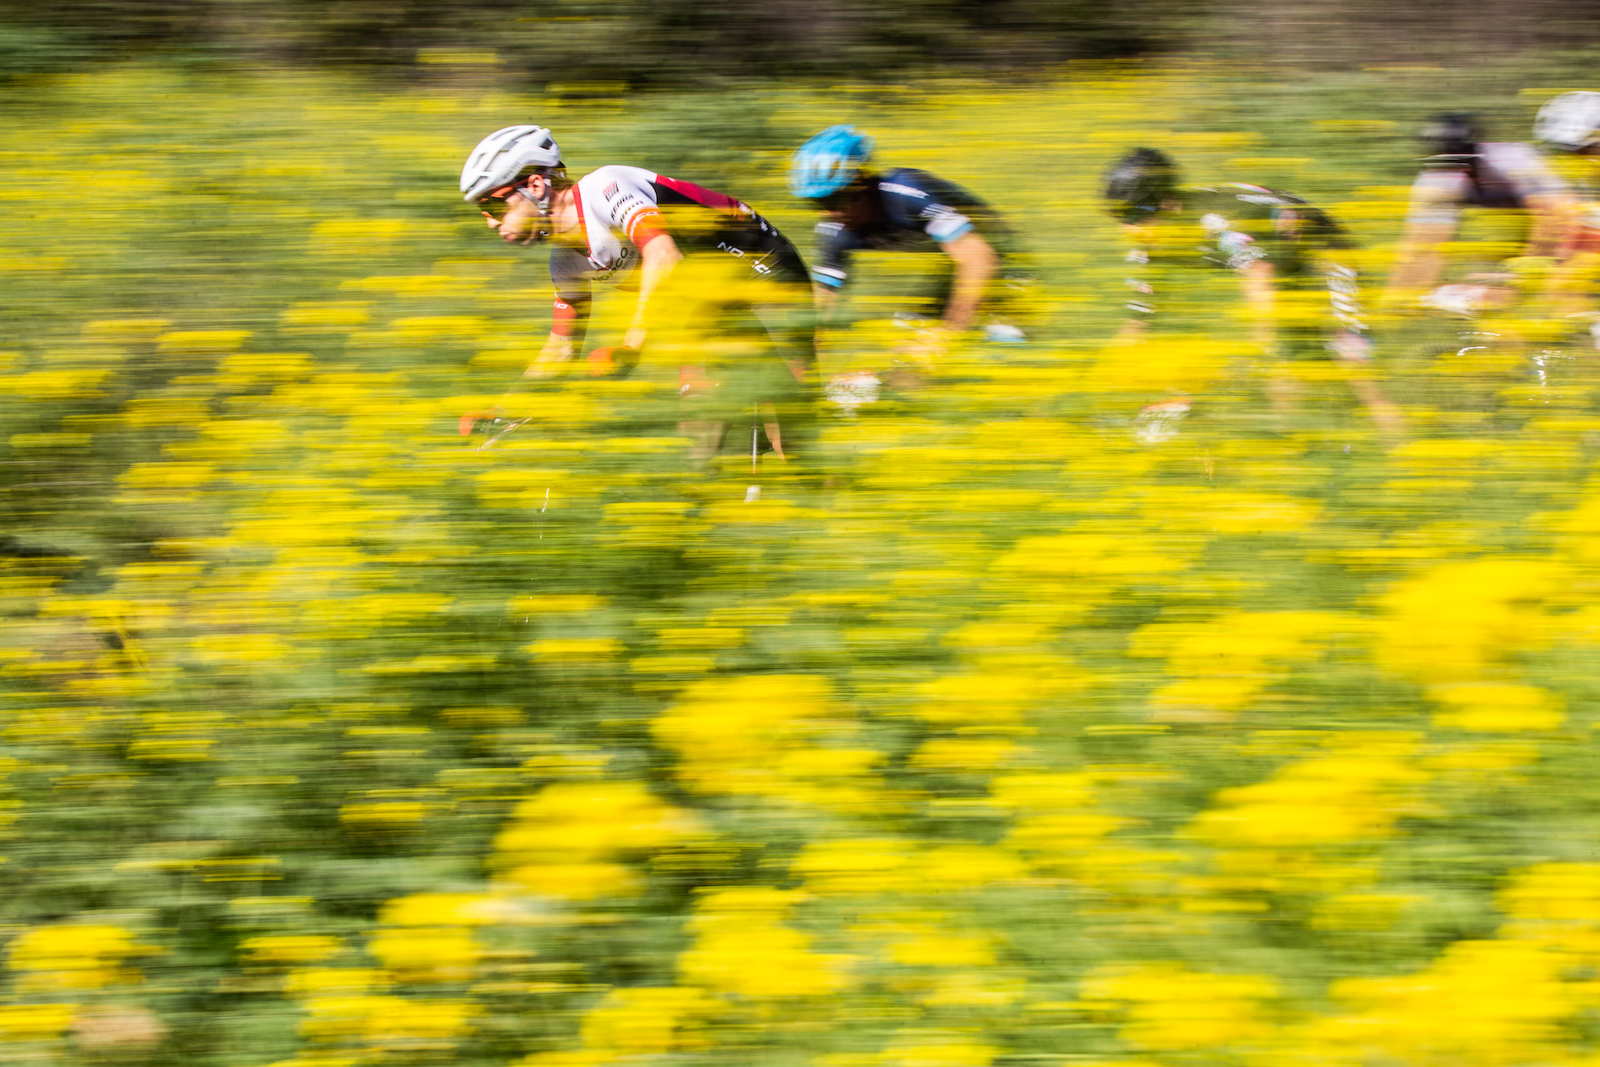 Peter Disera leading the charge through the flowers in California